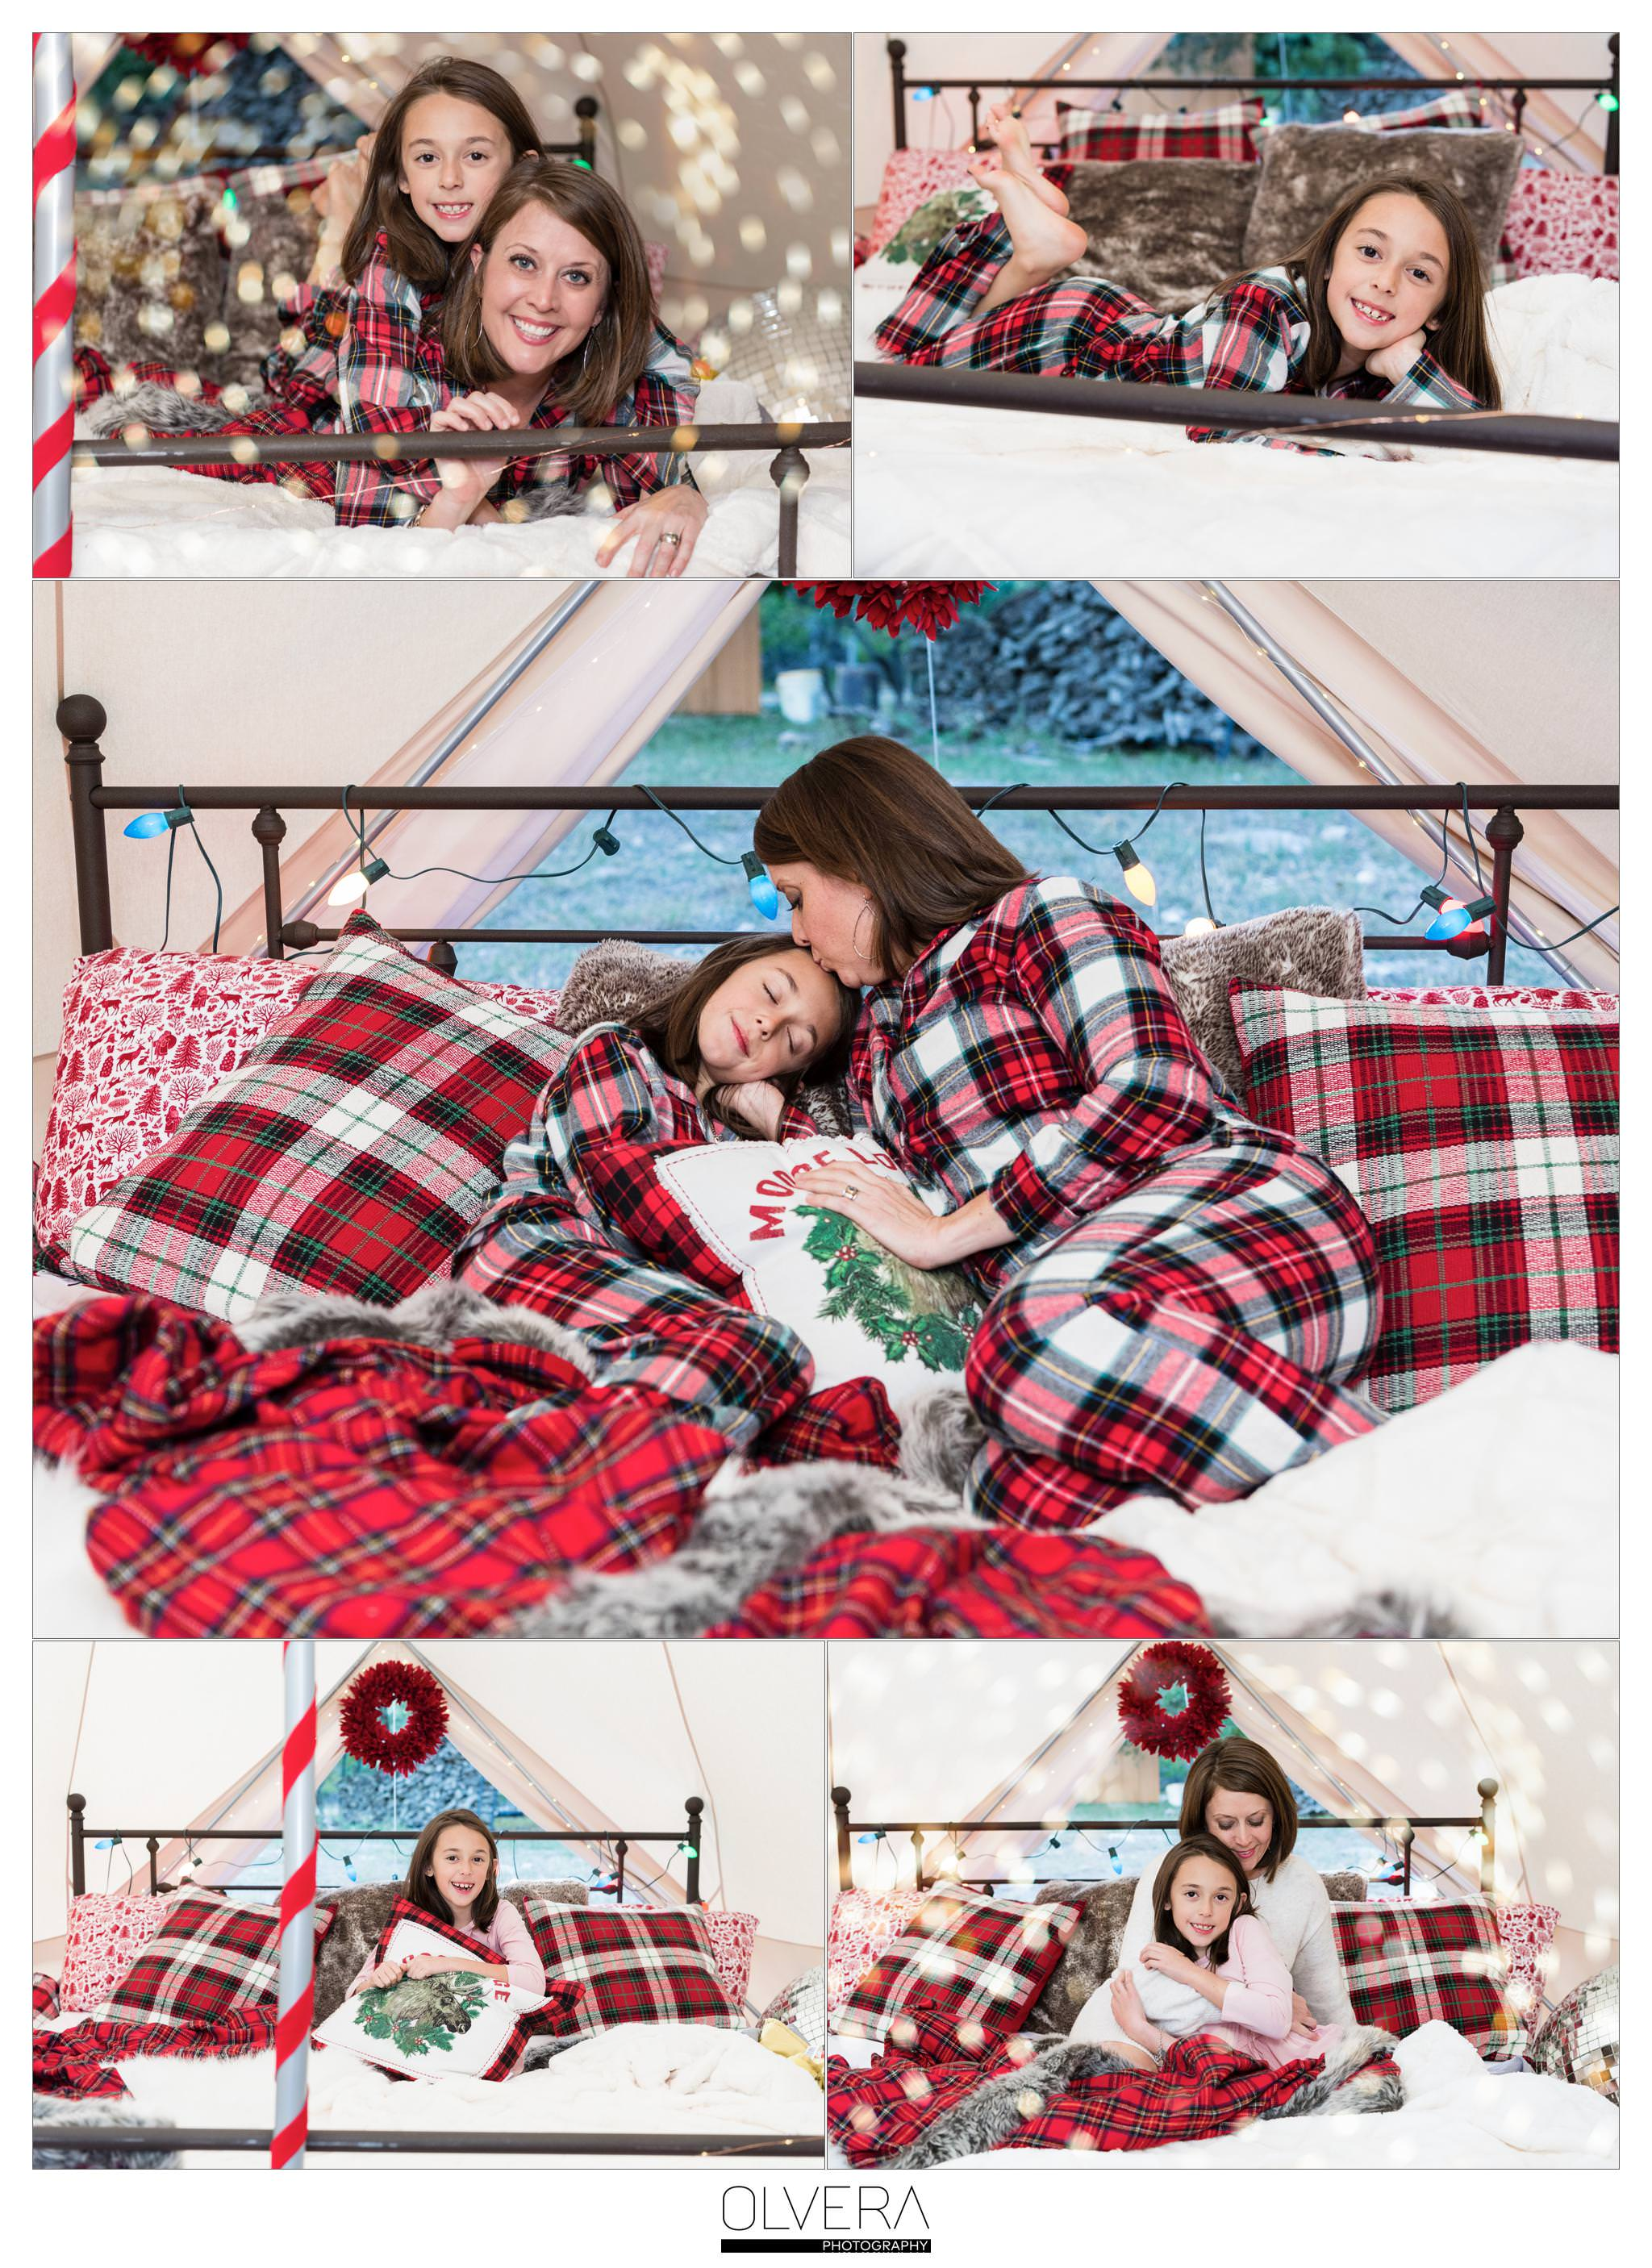 San-Antonio-Mini-Sessions_Christmas-Cabin-Tent_Olvera-Photography-5